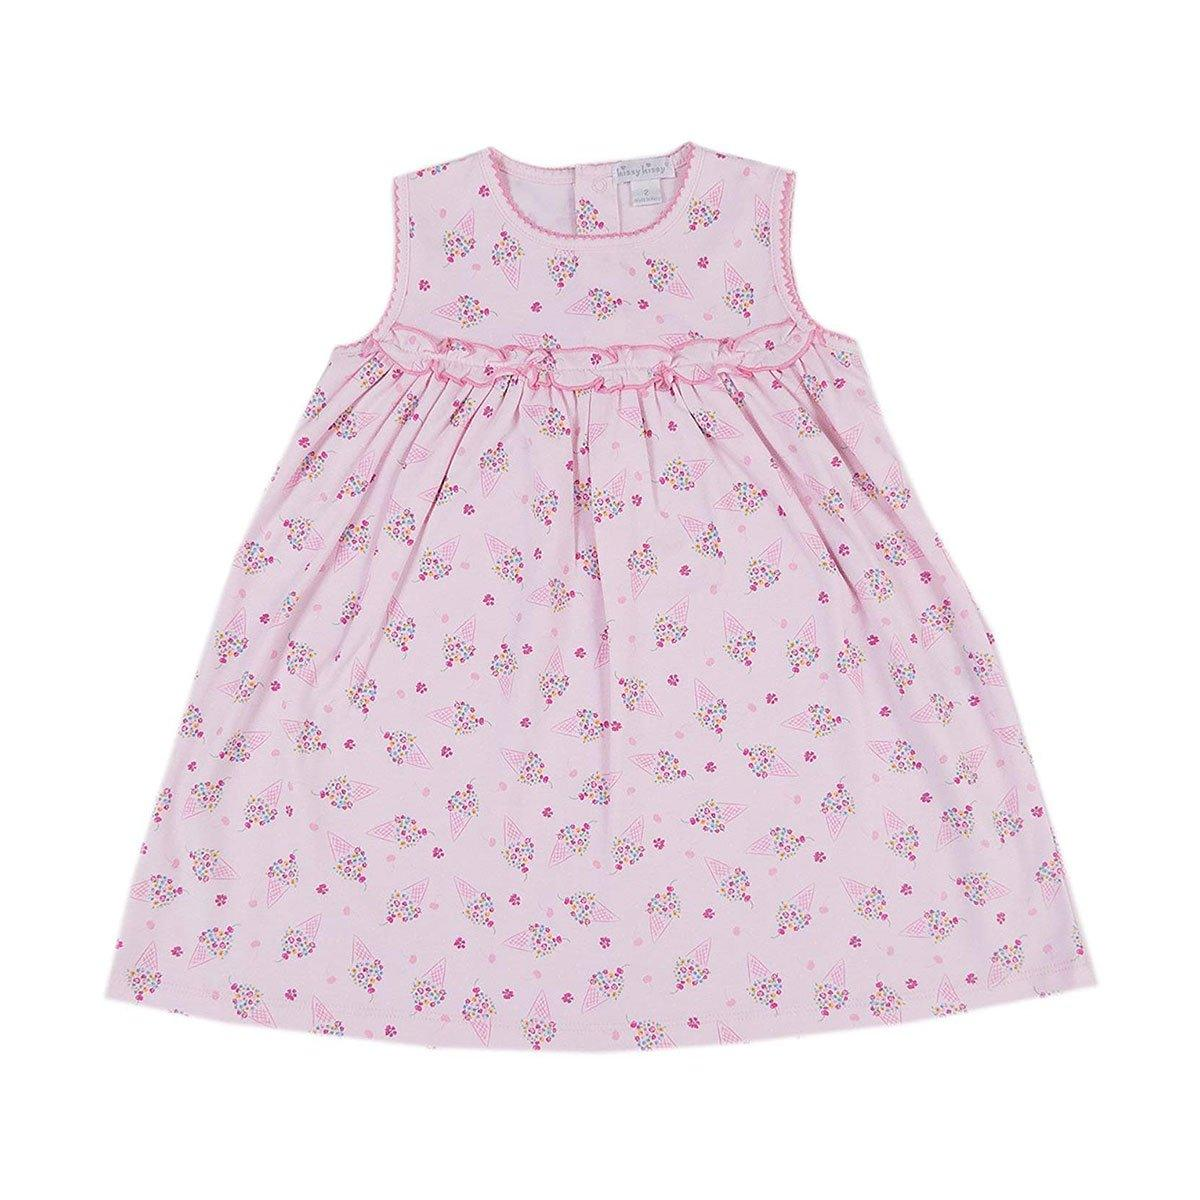 Kissy Kissy - Cherry On Top Print Sleeveless Dress For Girls, Pink